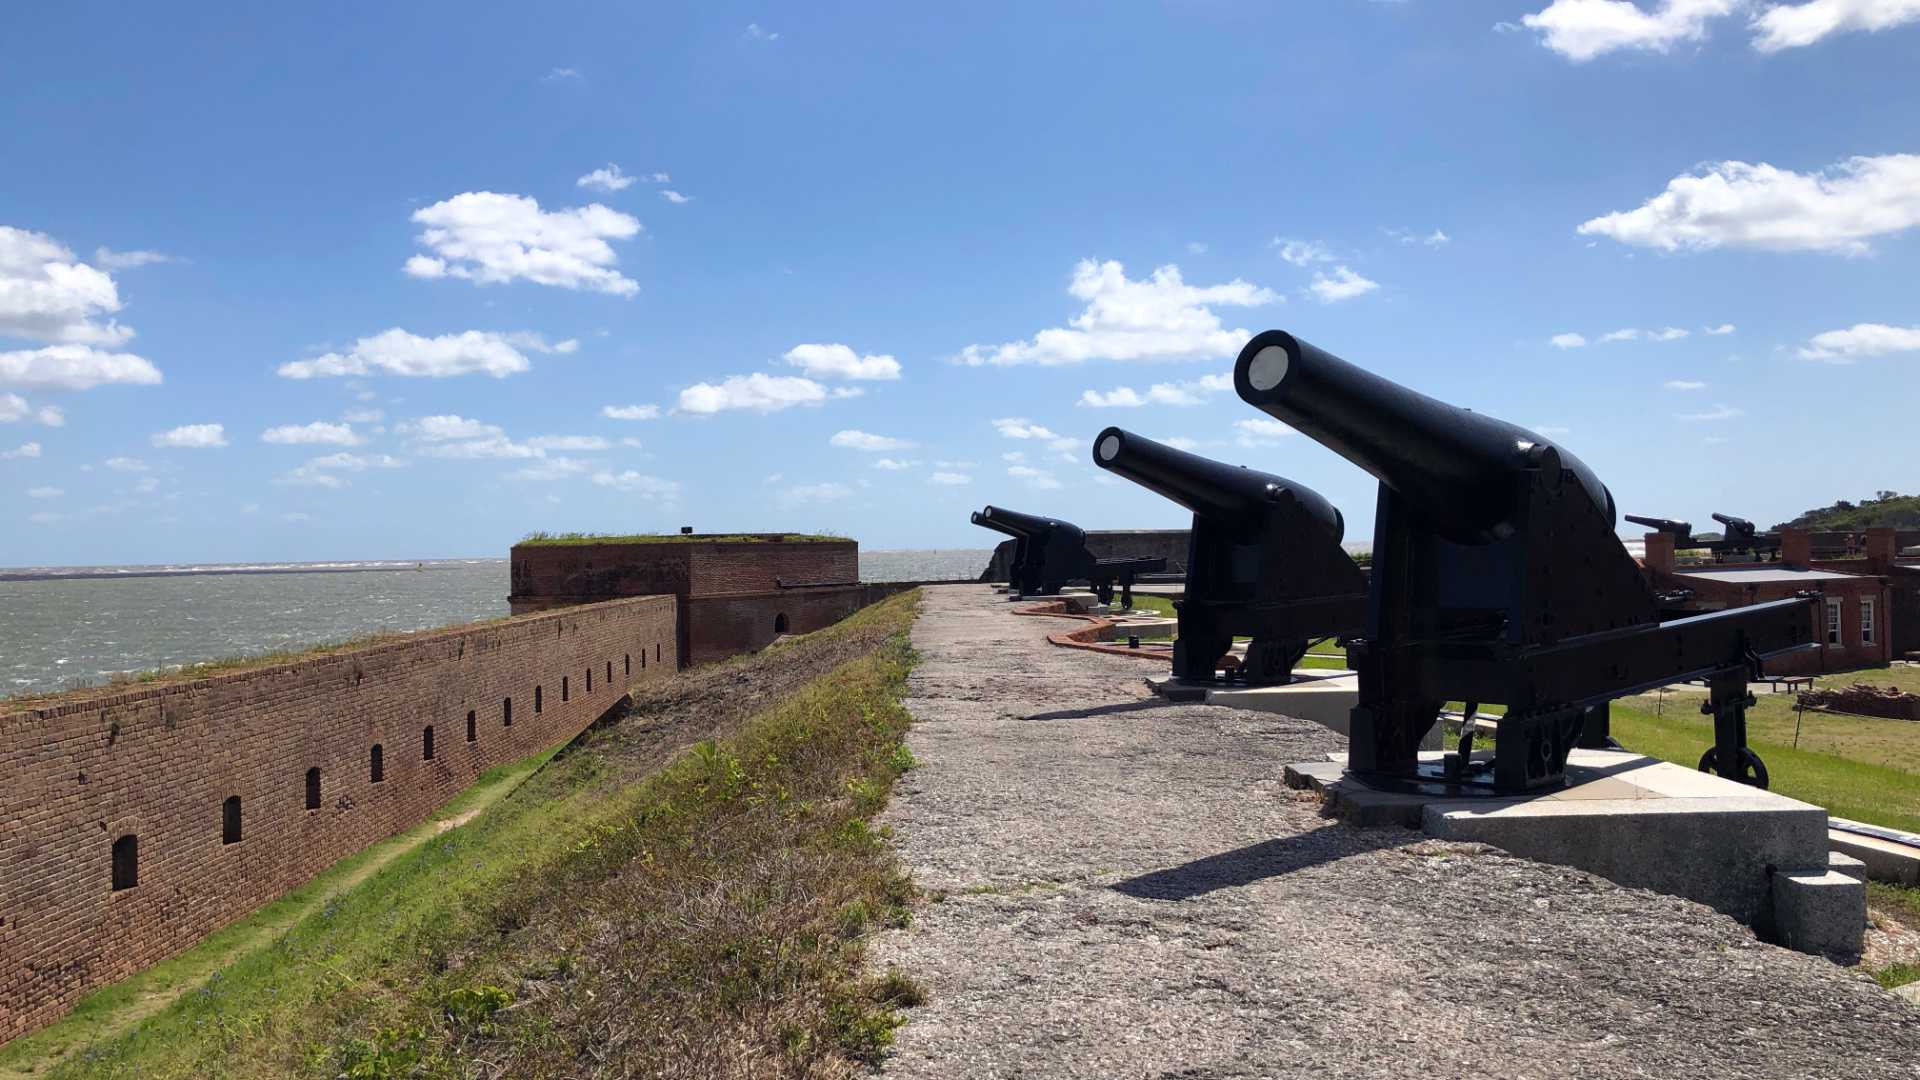 The view from Fort Clinch's ramparts on Amelia Island, FL.